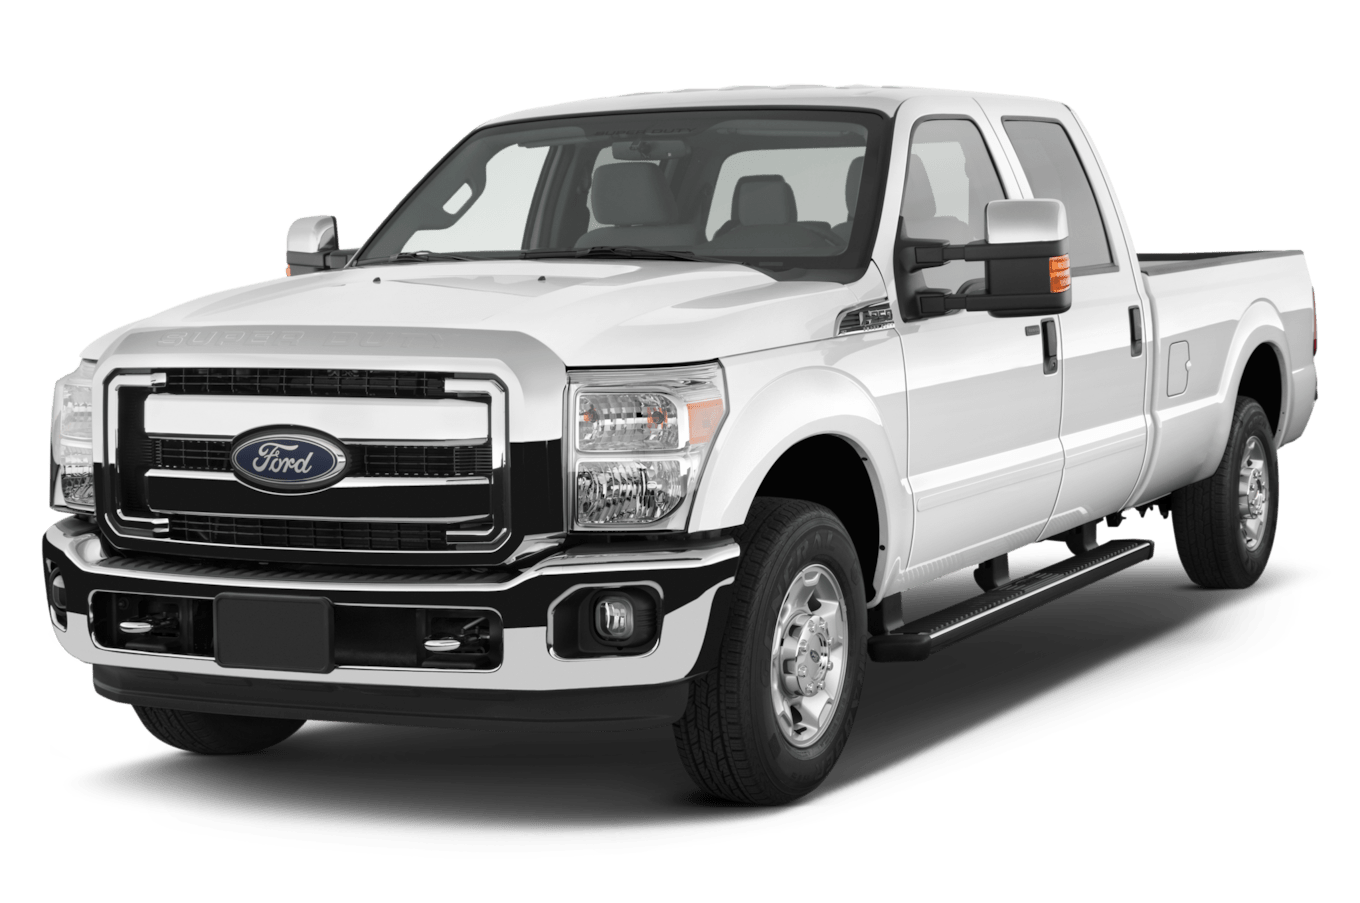 medium resolution of 2012 ford f 250 reviews research f 250 prices specs 2012 ford f250 4x4 transmission wiring harness